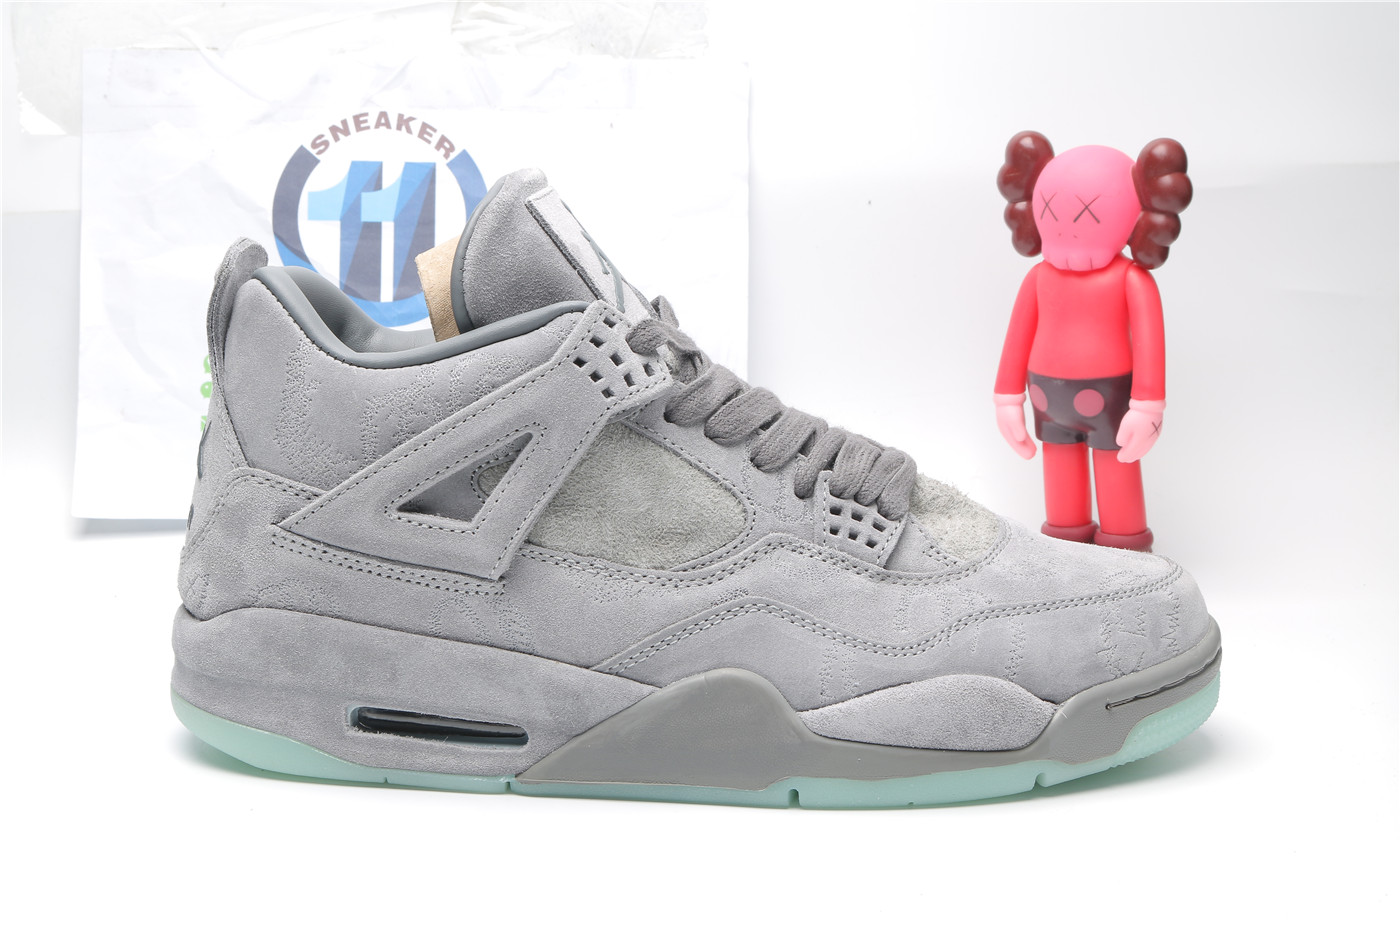 NIKE KAWS X Air Jordan 4 Cool Grey